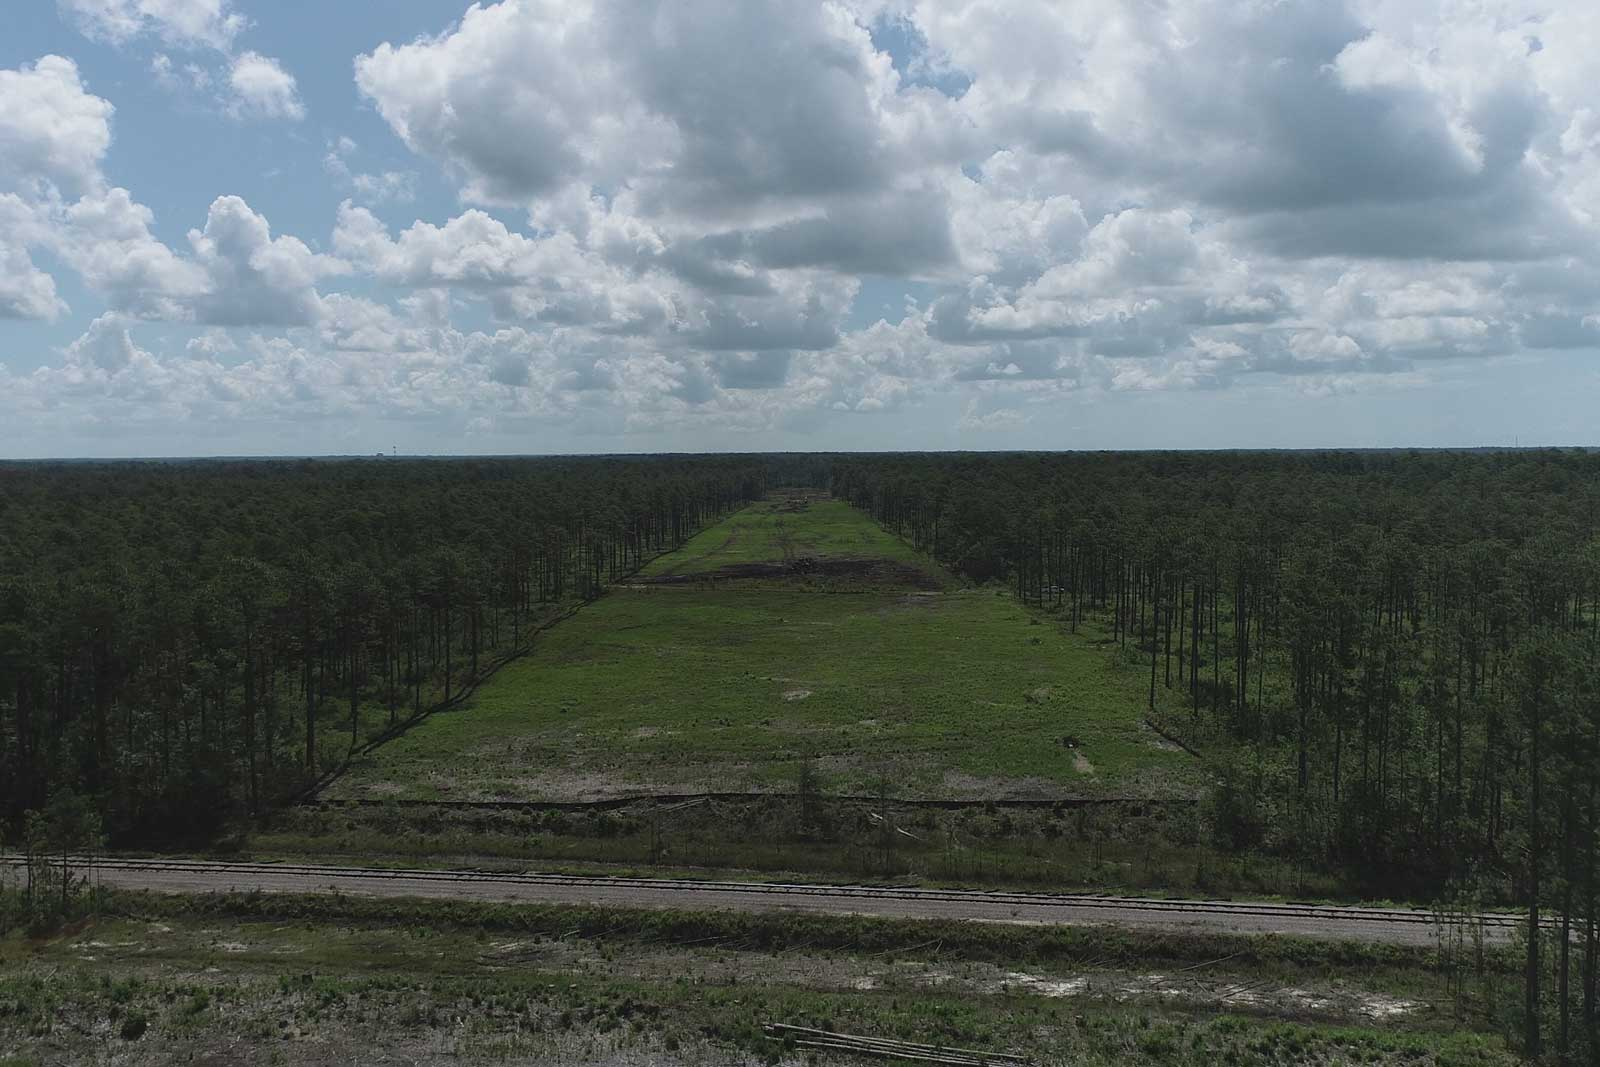 Clearing has been performed at the site of a future bridge over the Camp Lejeune Railroad.